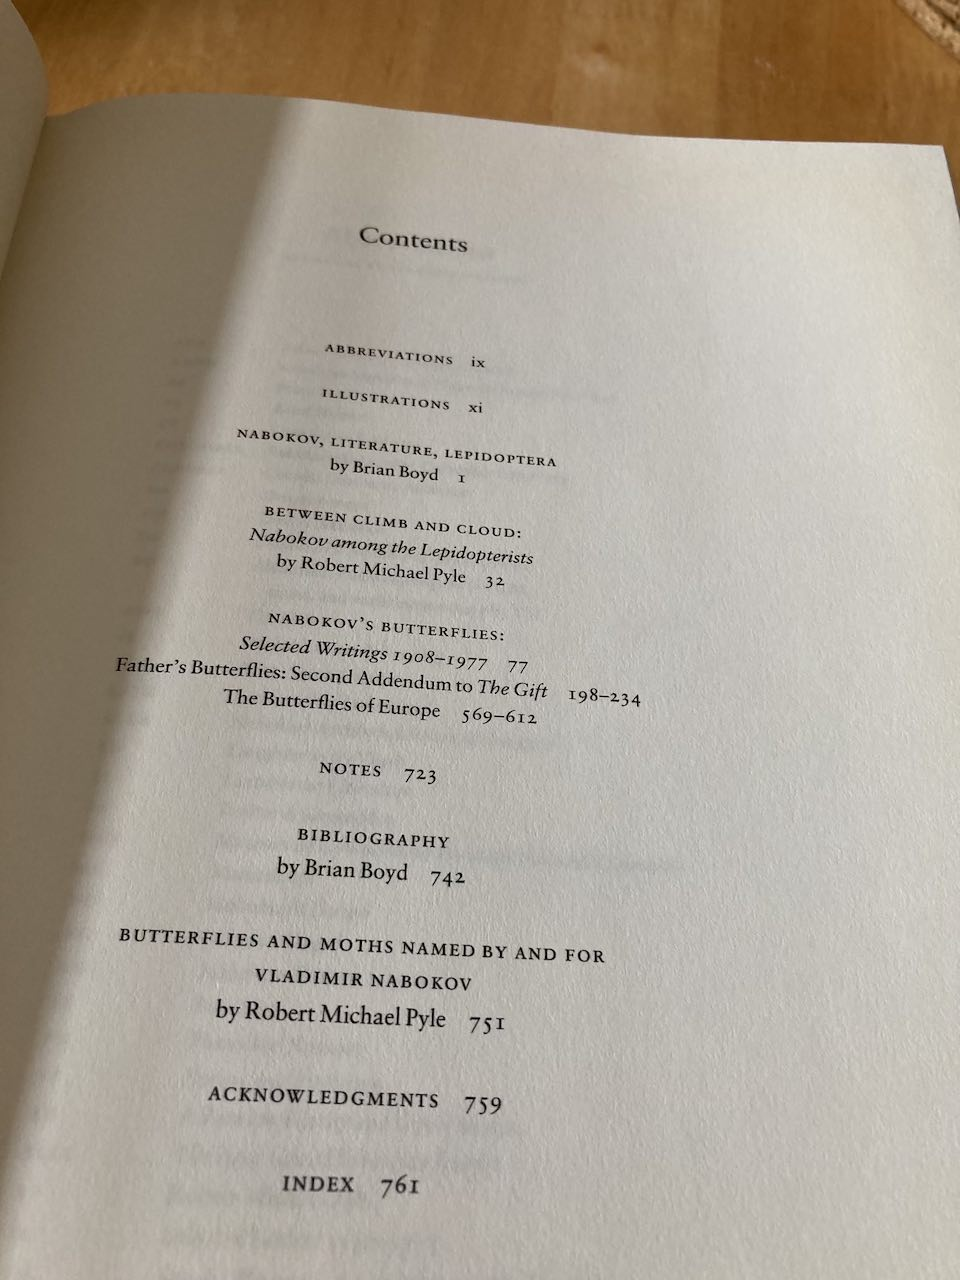 Nabokov's Butterflies contents page.